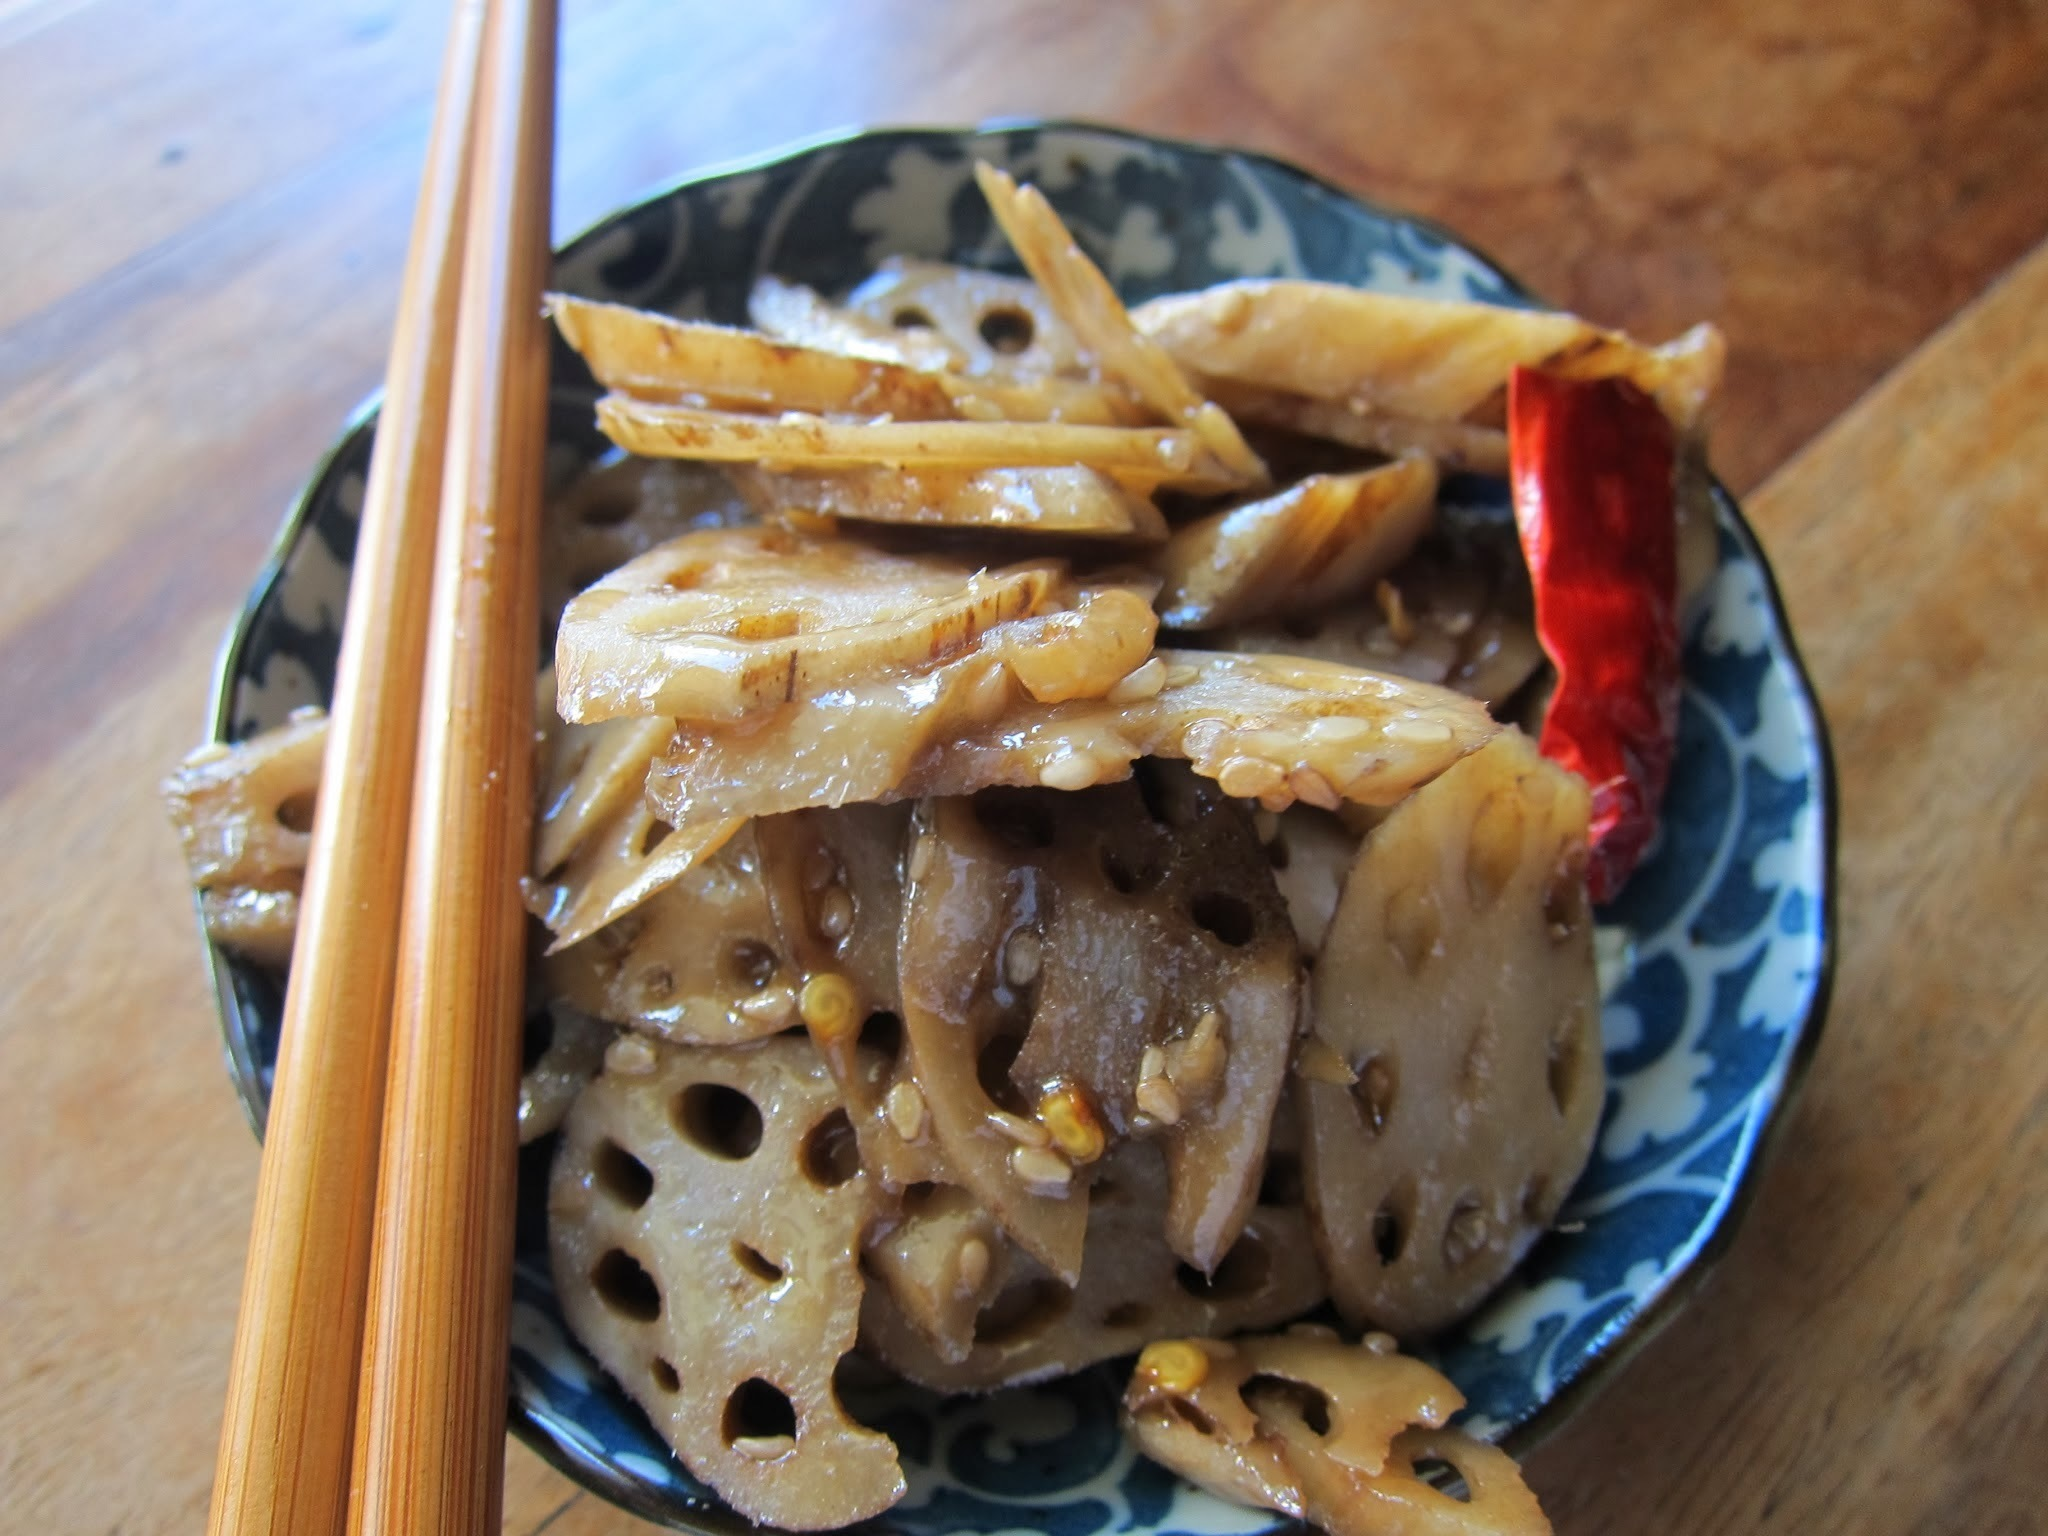 An Asian Feast - Lotus Stem in a sweet, sticky, sesame sauce.